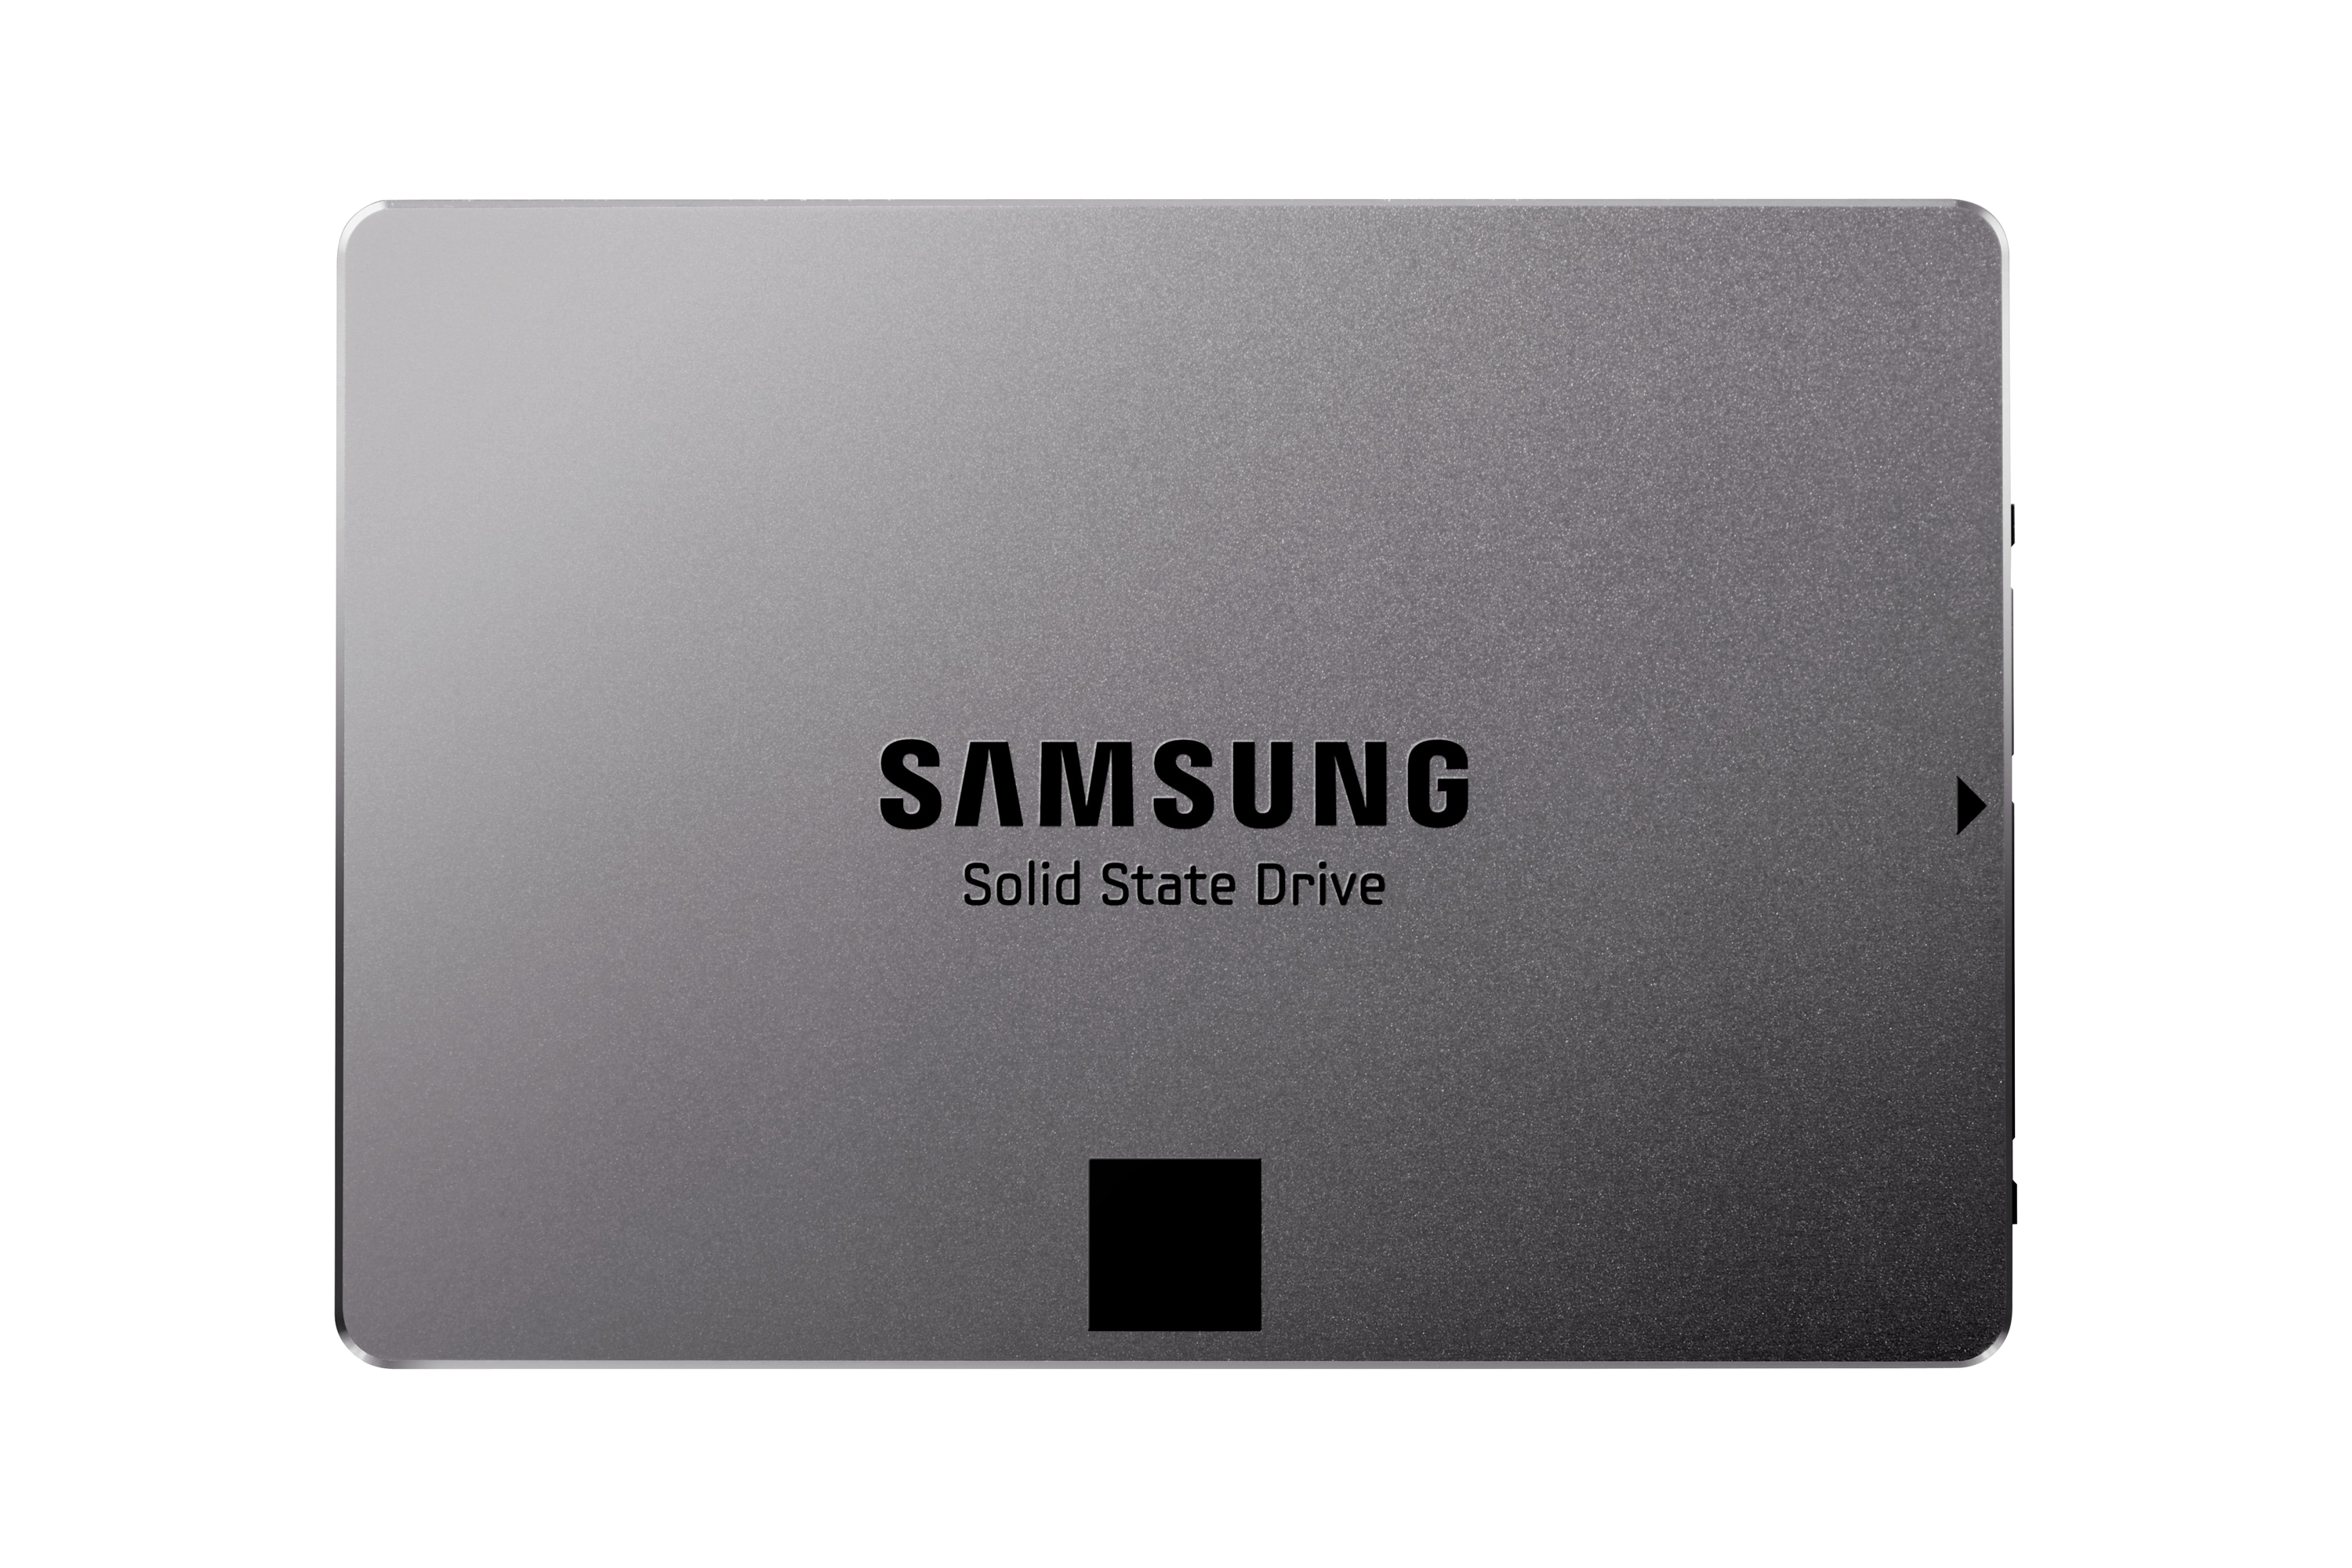 Samsung SSD 840 EVO – 120 GB (w / Installation Kit)